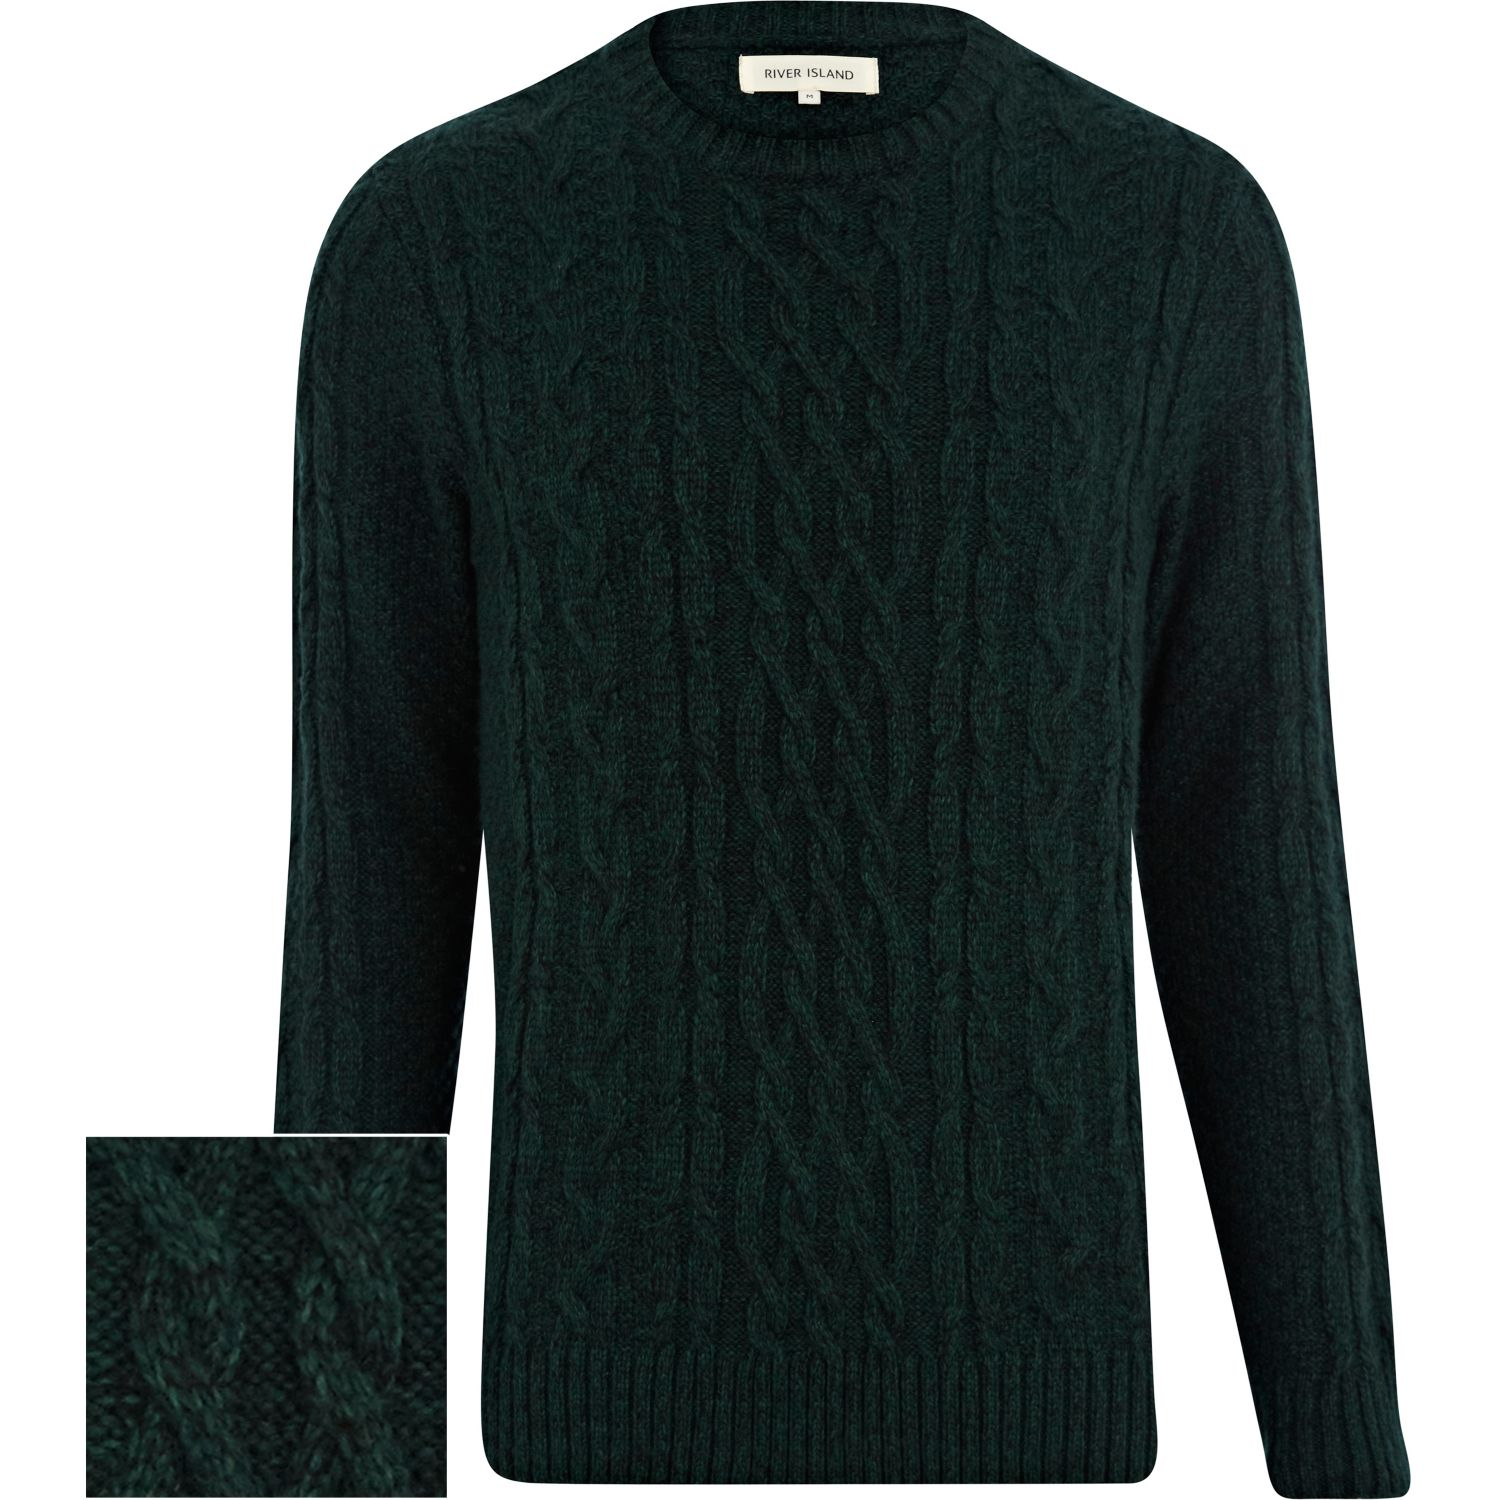 b6a71148408 River Island Dark Green Cable Knit Sweater for men